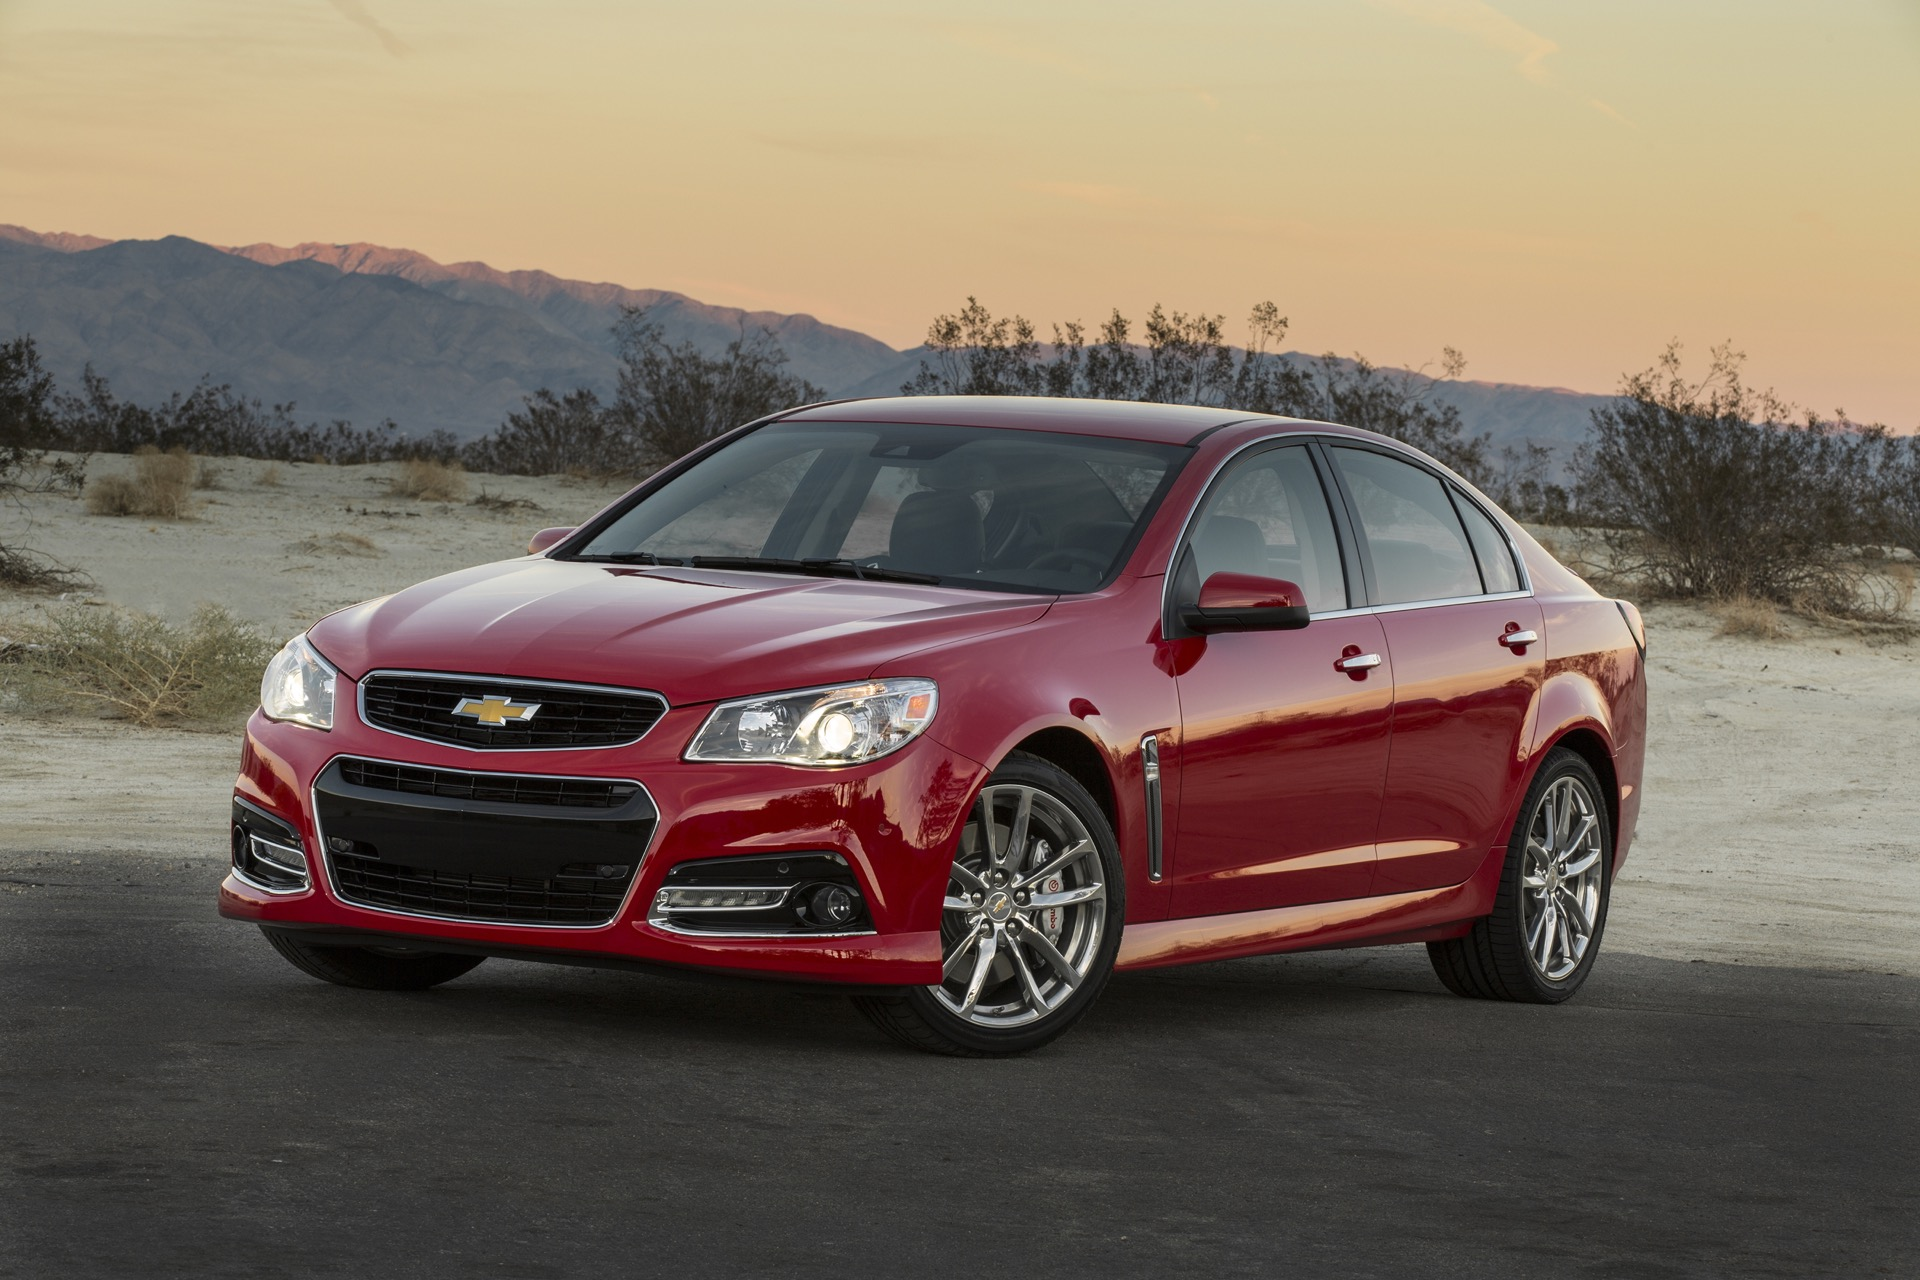 Is The Chevy SS Getting A Camaro 1LE-Like Handling Upgrade?